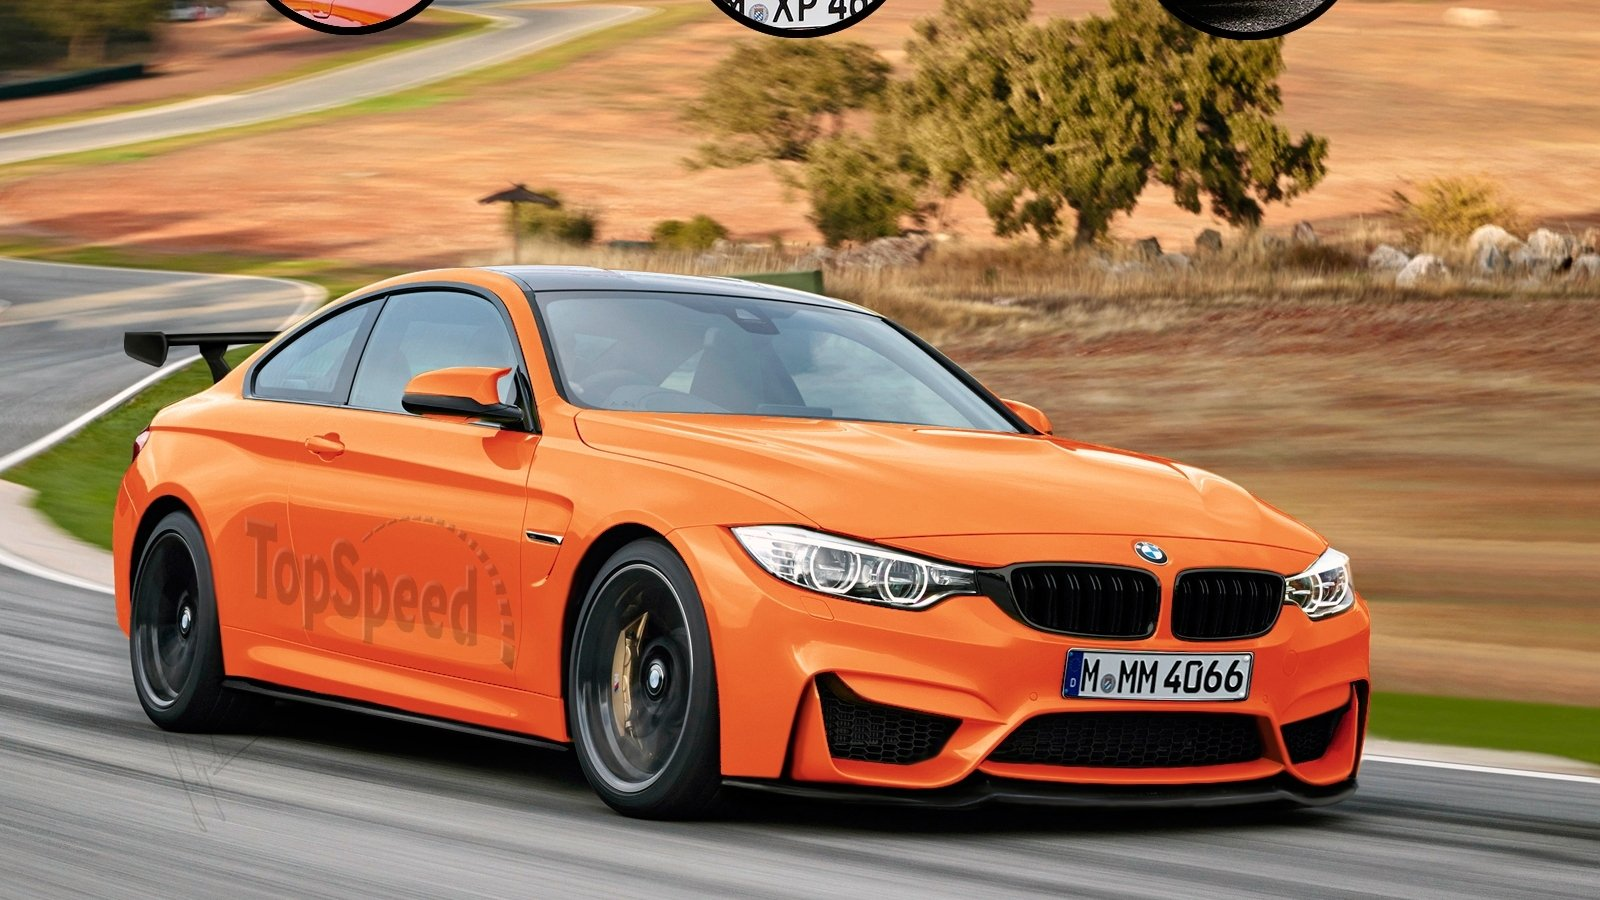 2016 bmw m4 gts picture 571633 car review top speed. Black Bedroom Furniture Sets. Home Design Ideas